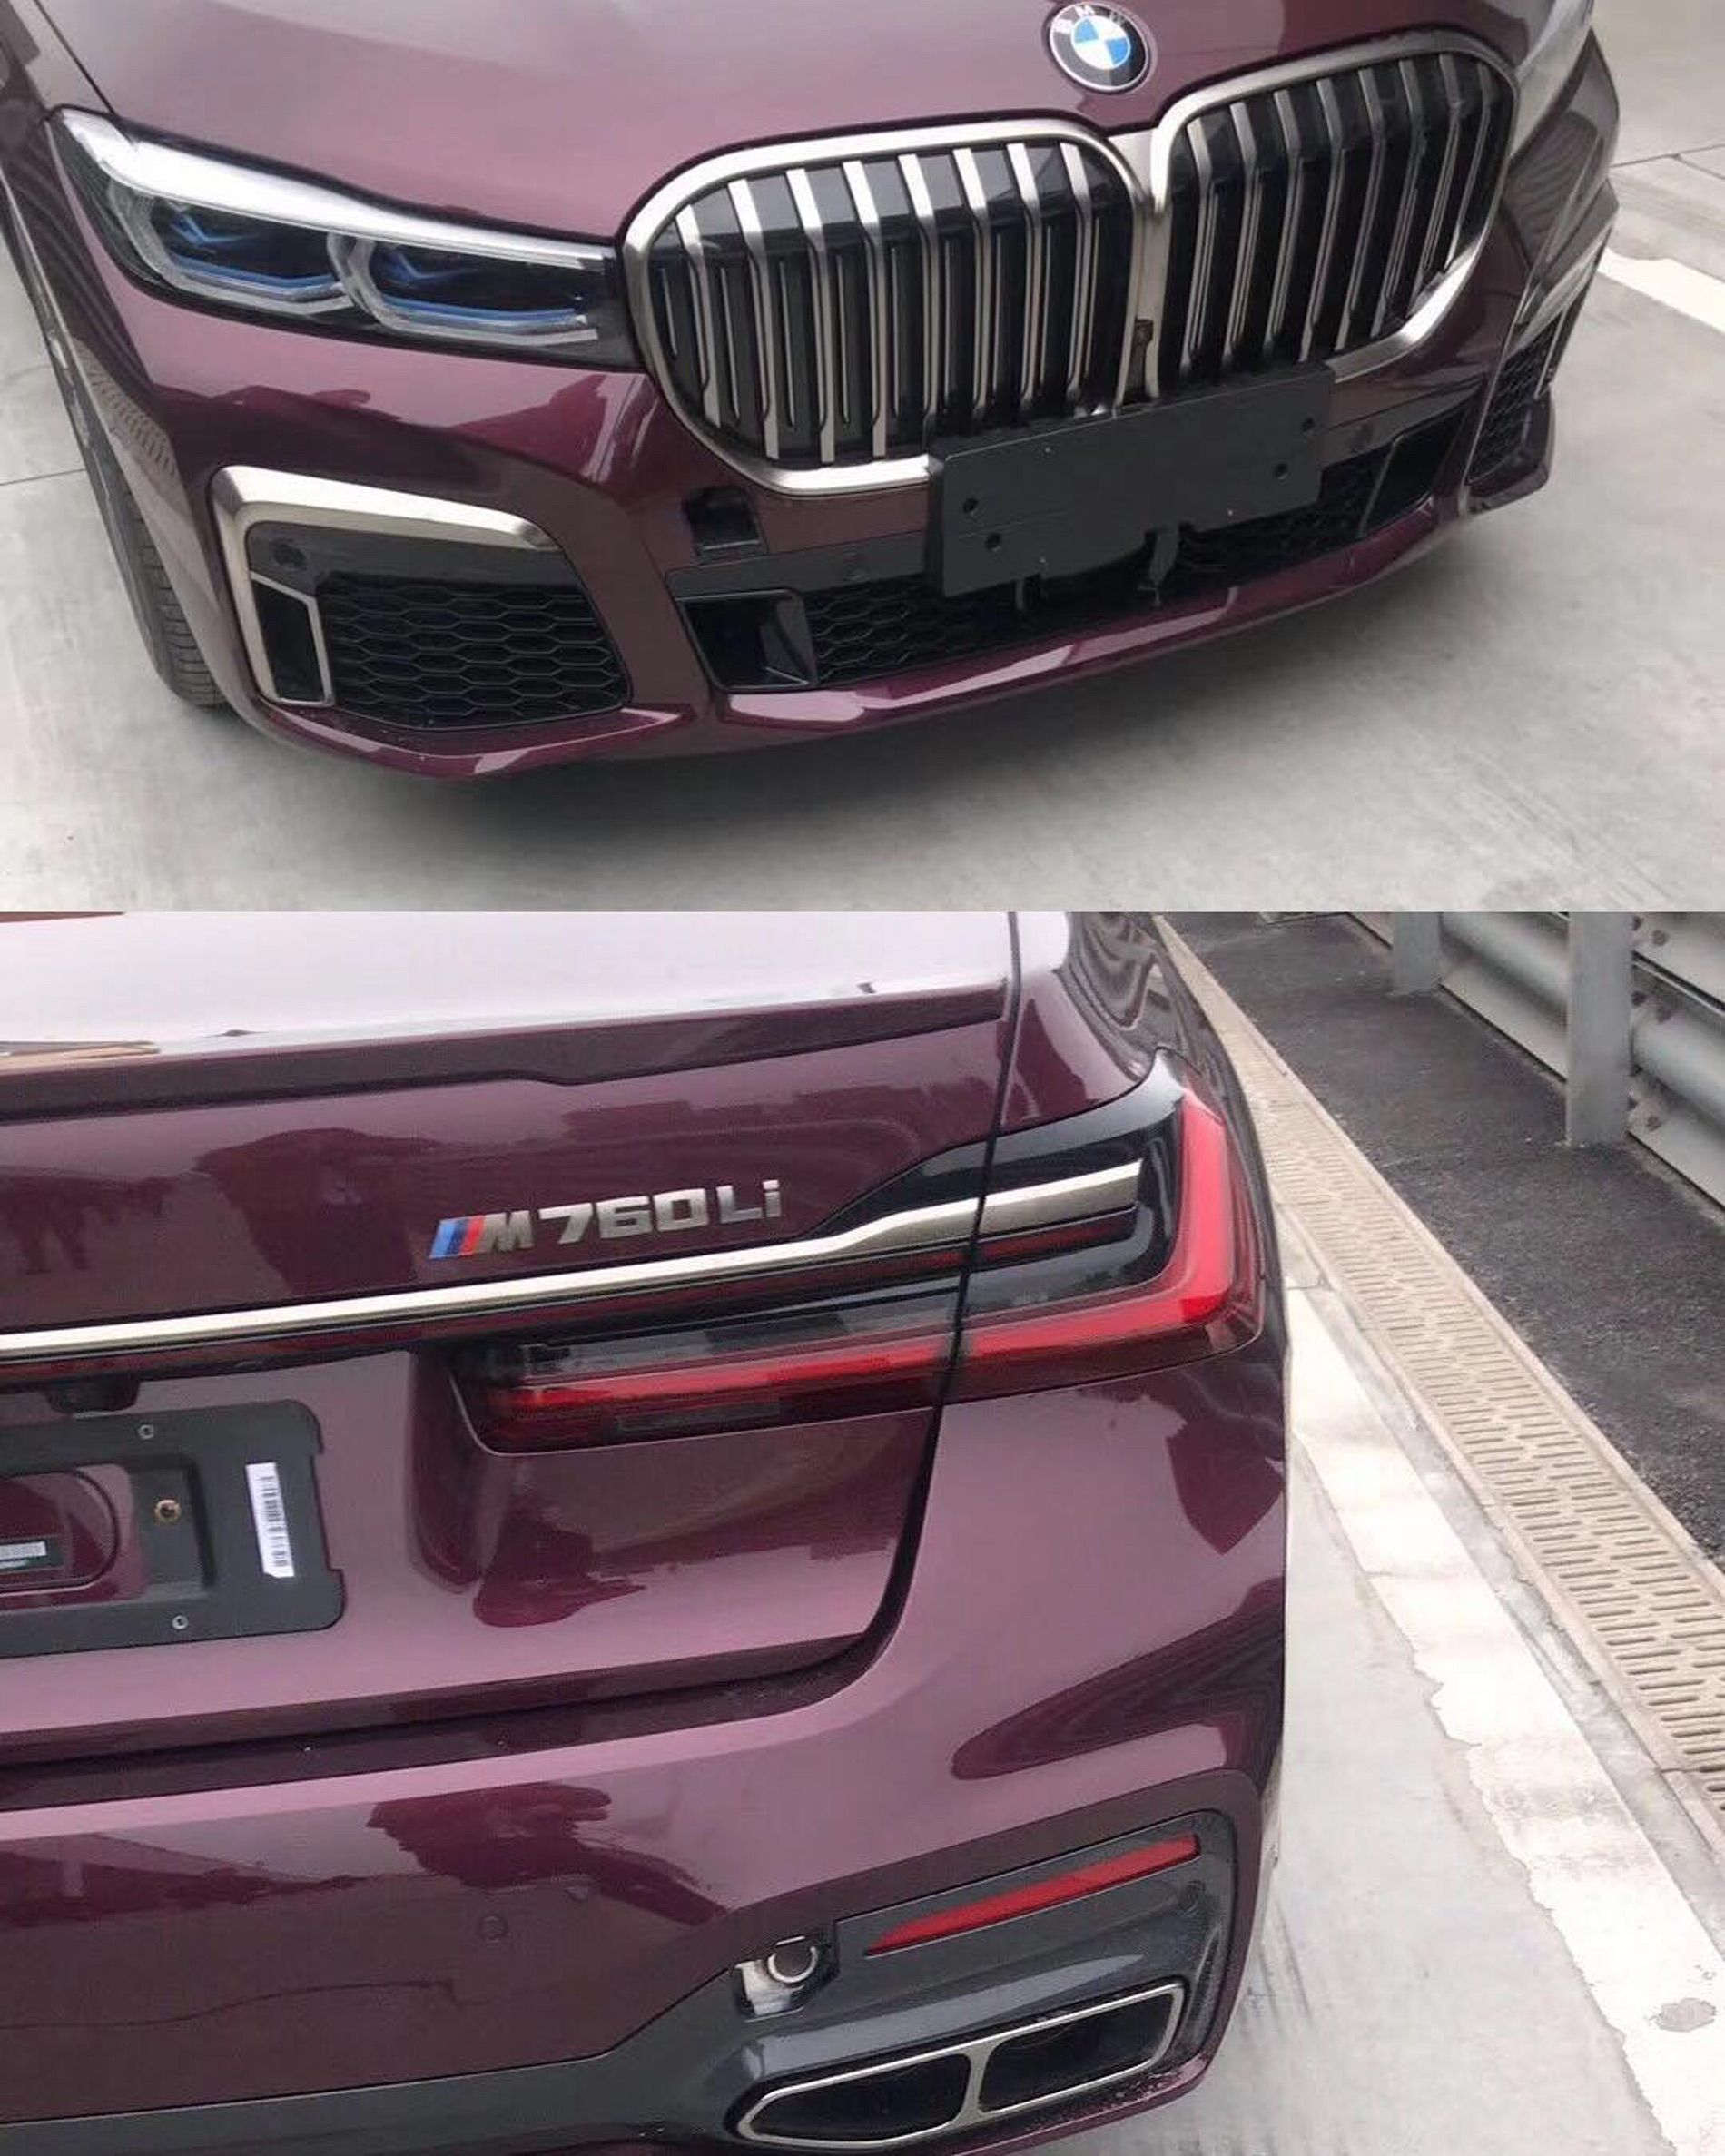 The BMW 7 Series Facelift leaks continue Bmw car models